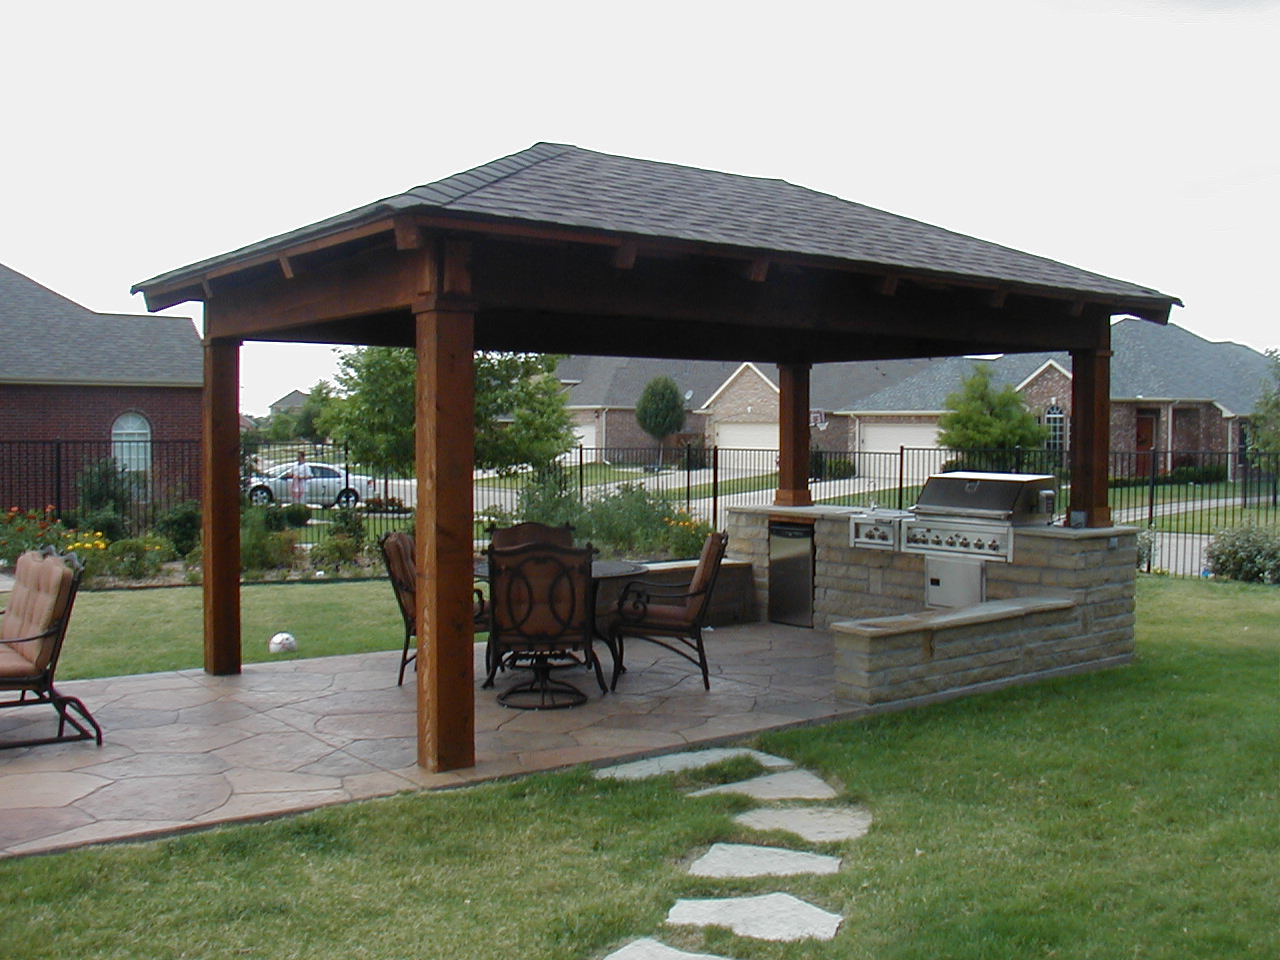 Outdoor Pavilion Plans With Kitchen Idea Wooden Pillar And Black Roof Plus Natural Stone